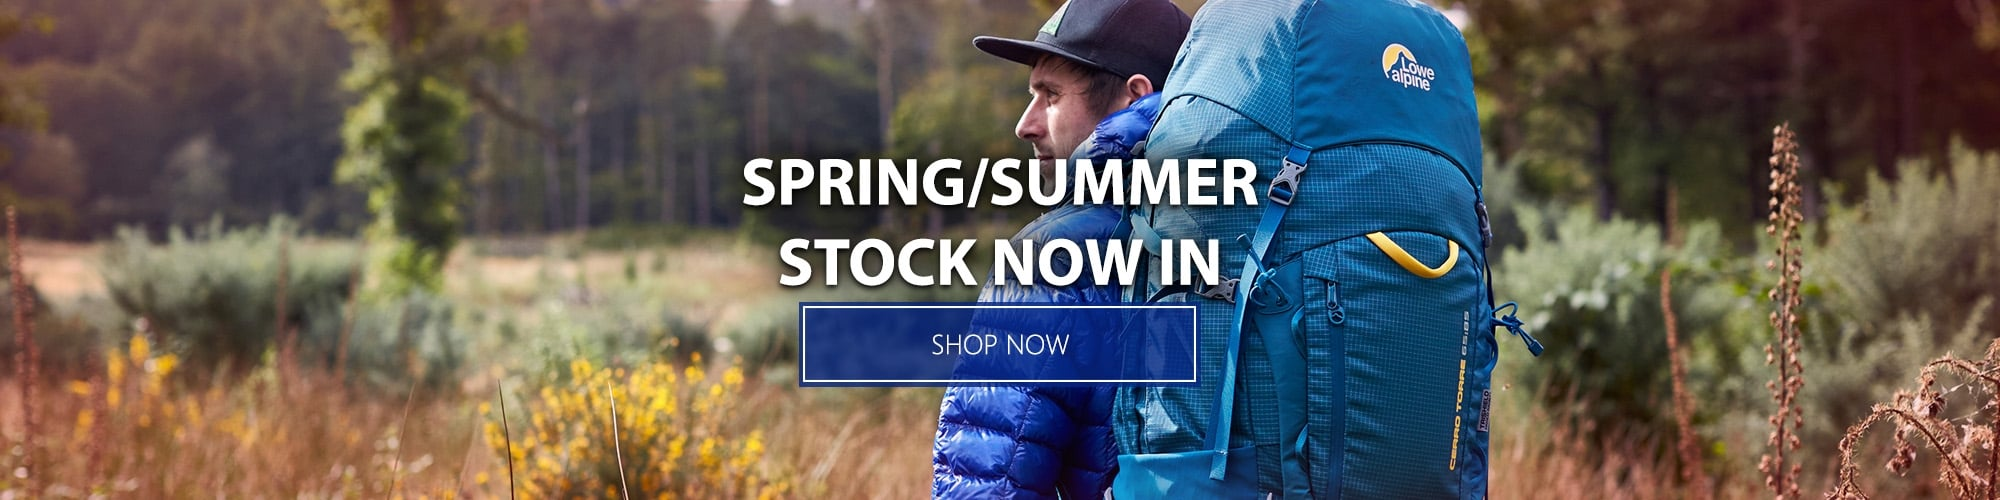 Spring/Summer 2018 Stock Now In